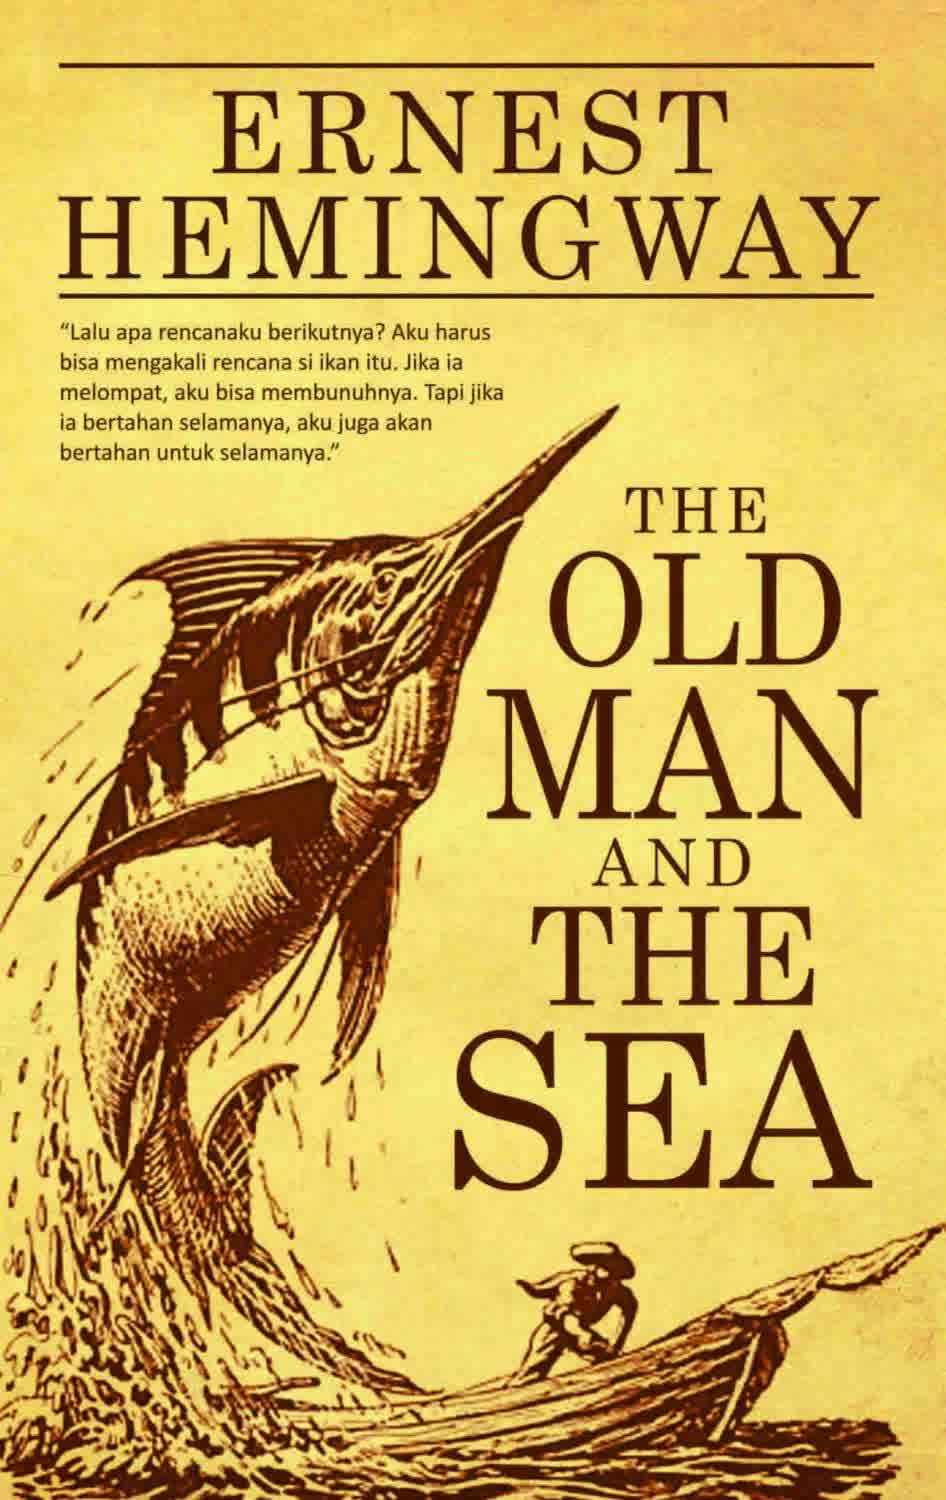 an analysis of the hero code in the old man and the sea by ernest hemingway The old man and the sea-themes/theme analysis/code hero/christ guide-the old man and the sea by ernest hemingway for the old man and the sea - hemingway.